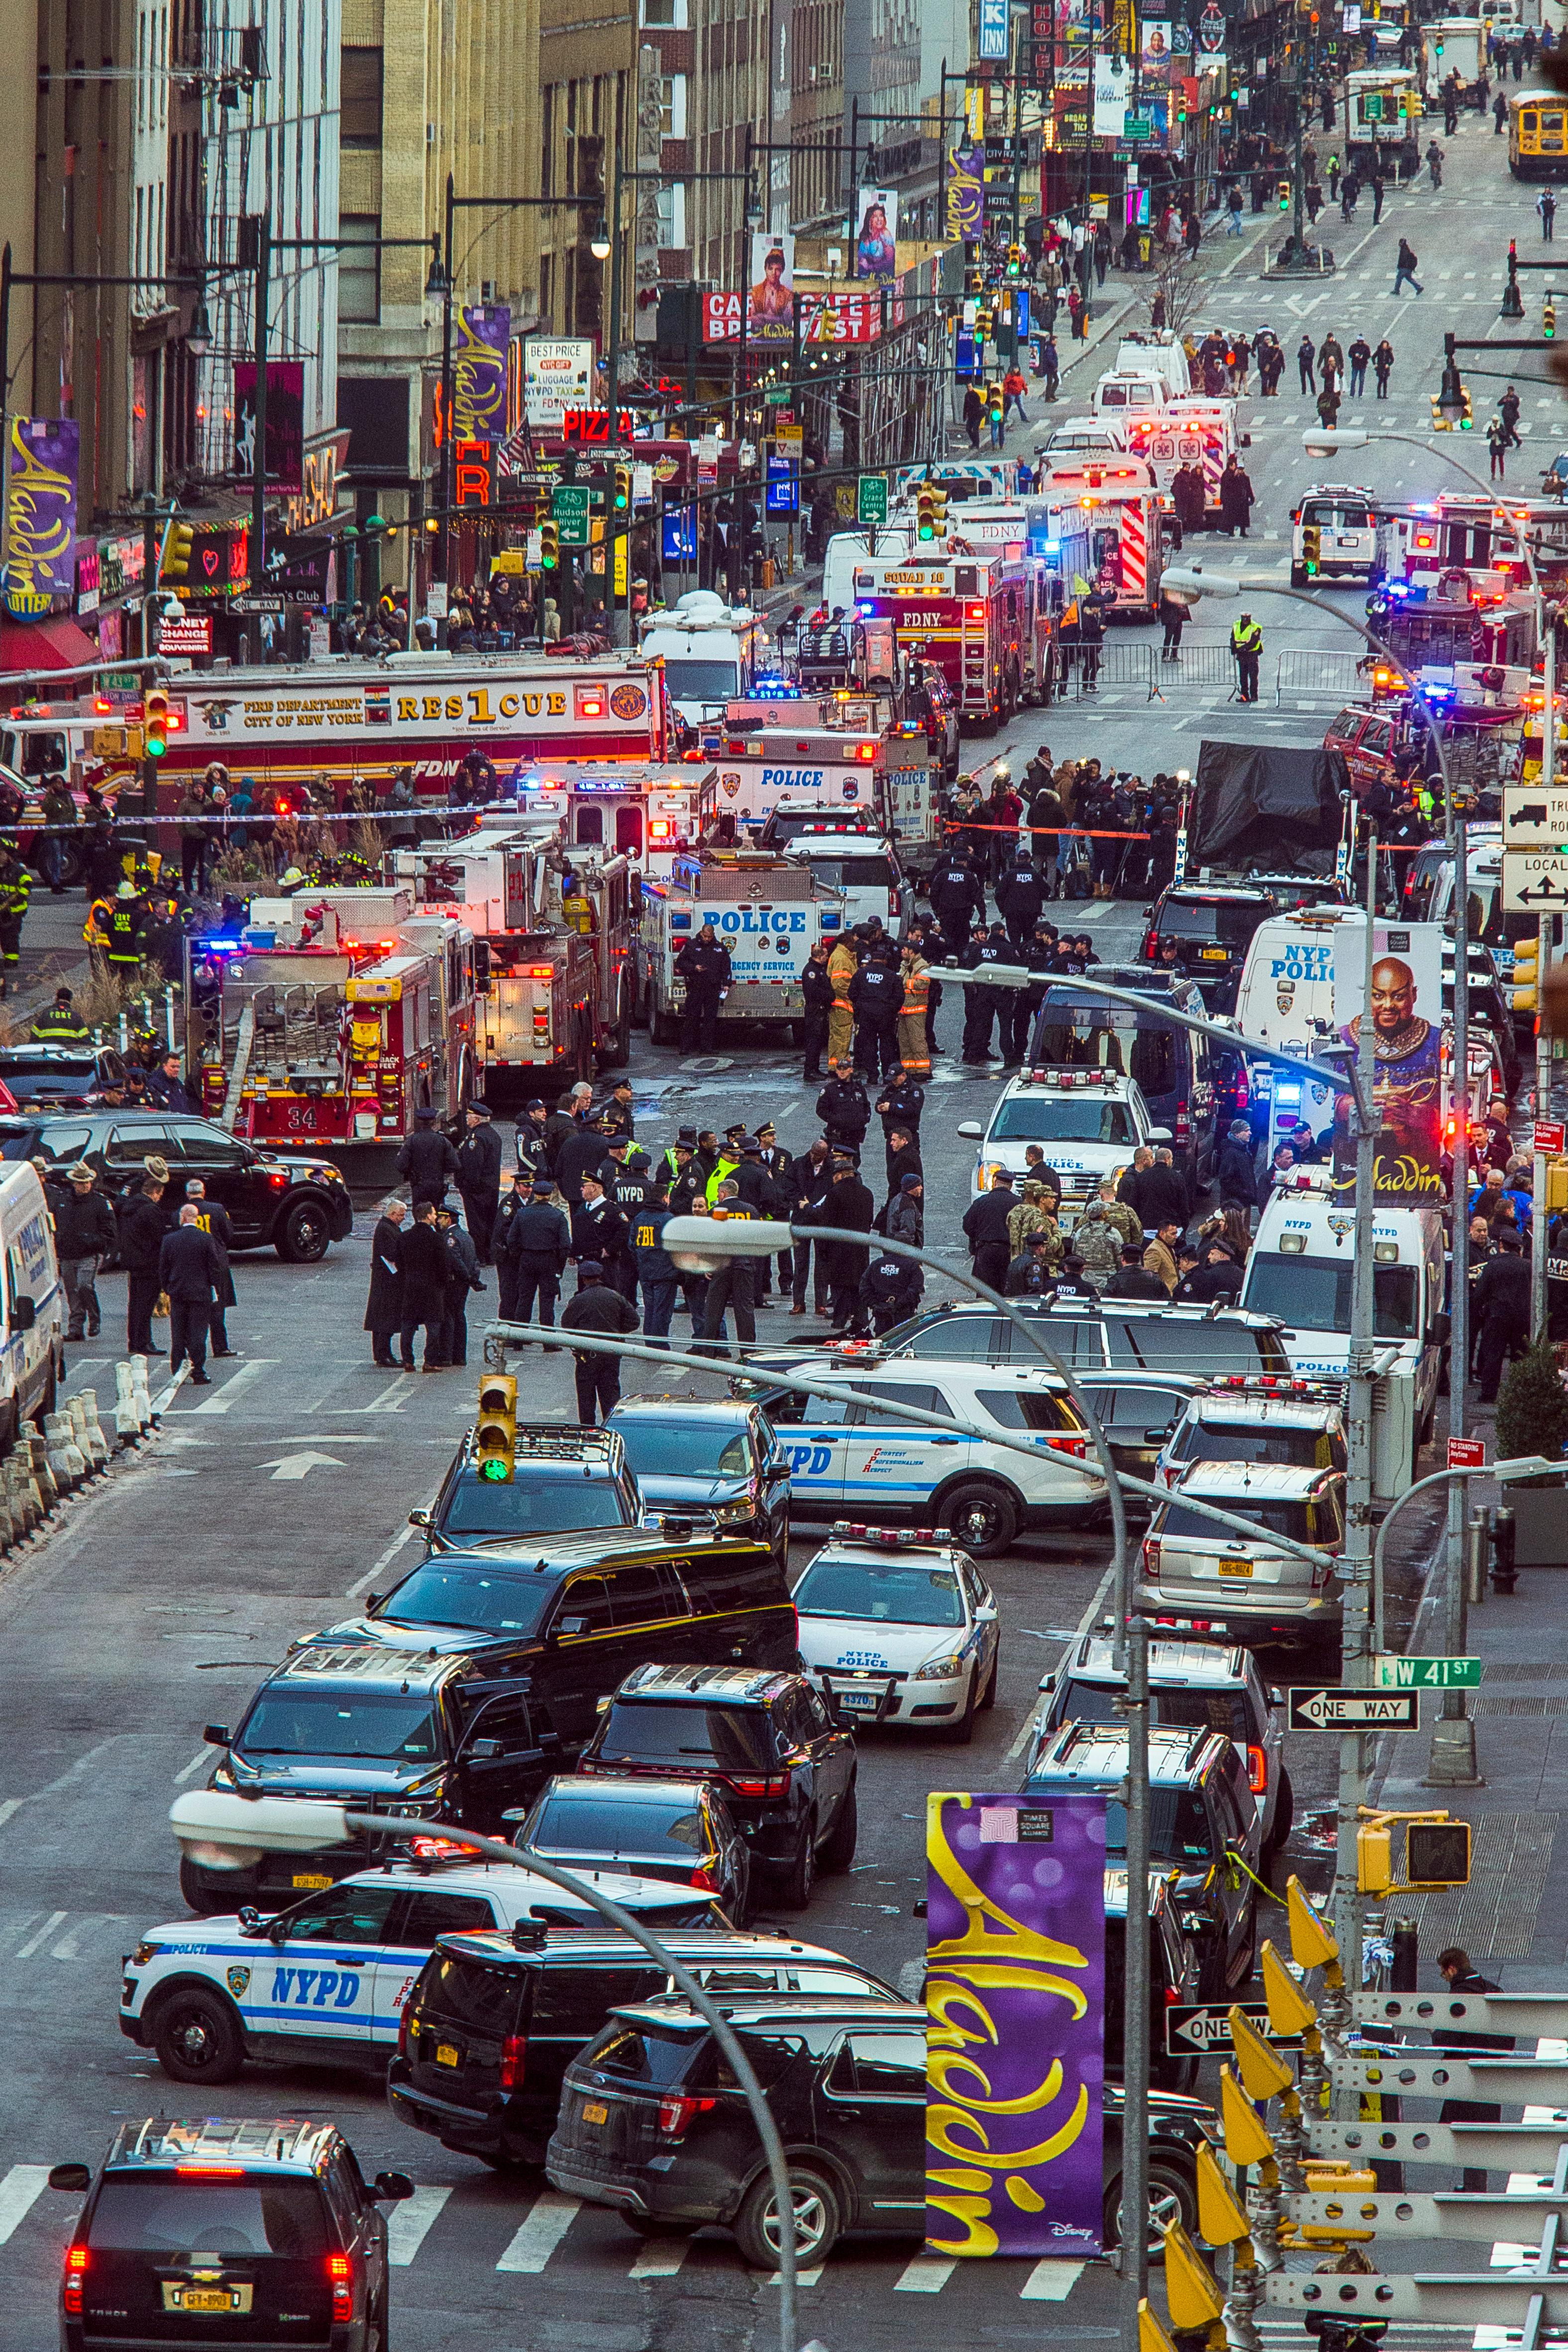 Law enforcement officials work following an explosion near New York's Times Square on Monday, Dec. 11, 2017. (AP Photo/Andres Kudacki)<p></p>